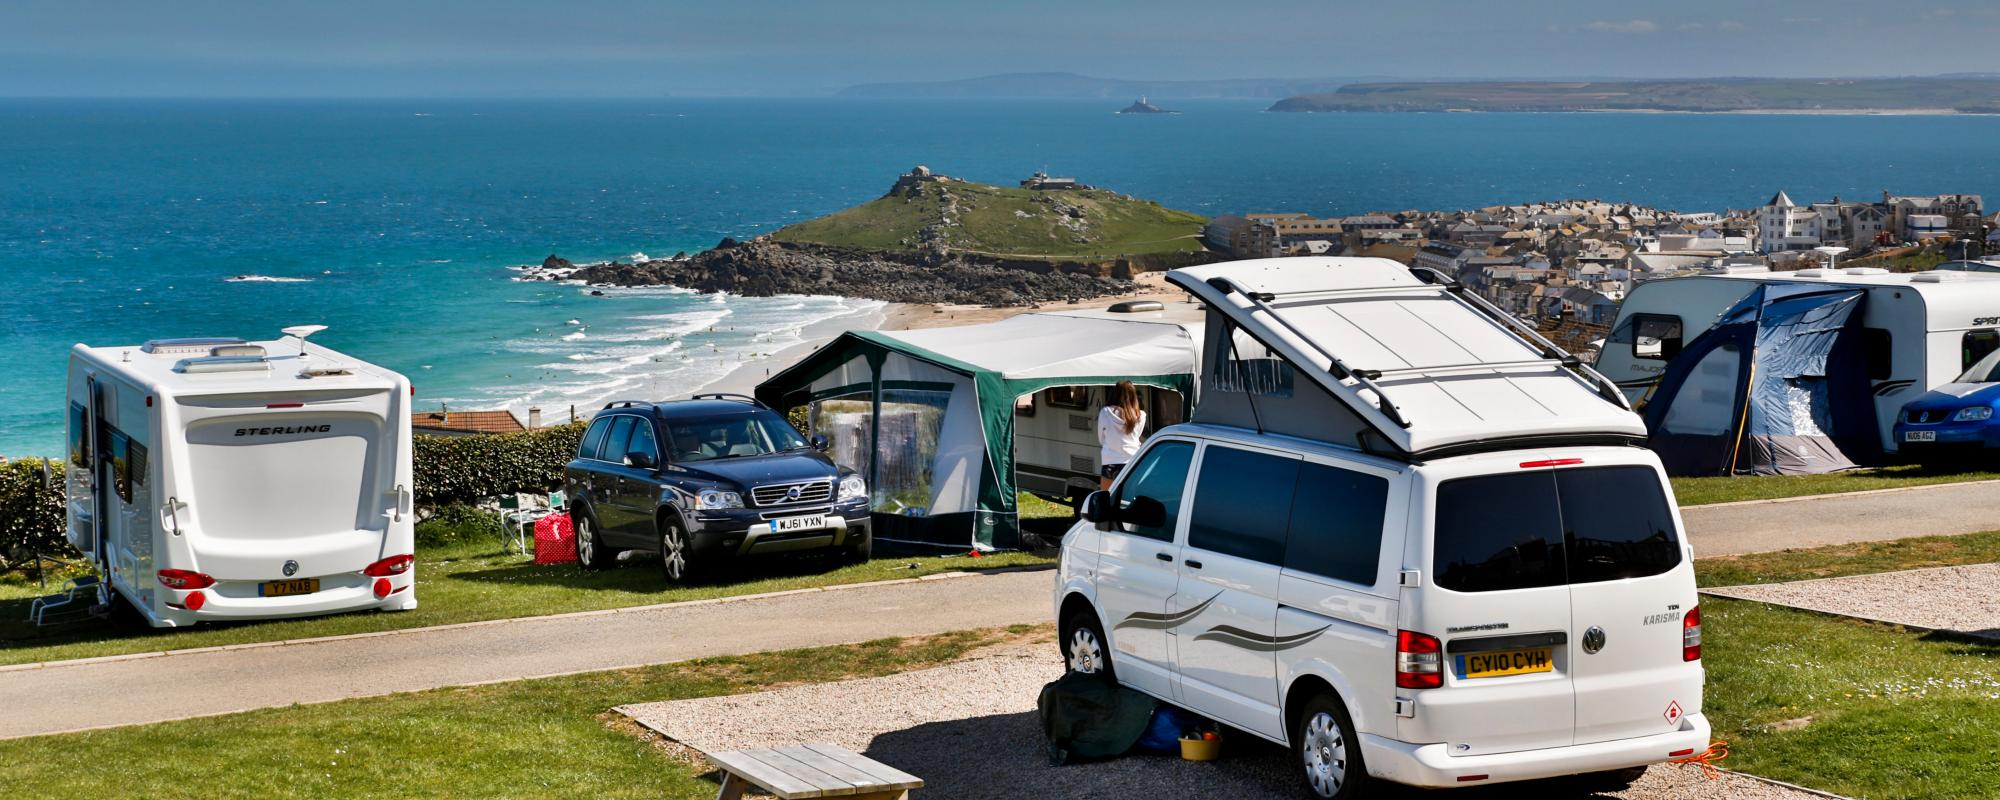 The caravan & motorhome show 2020